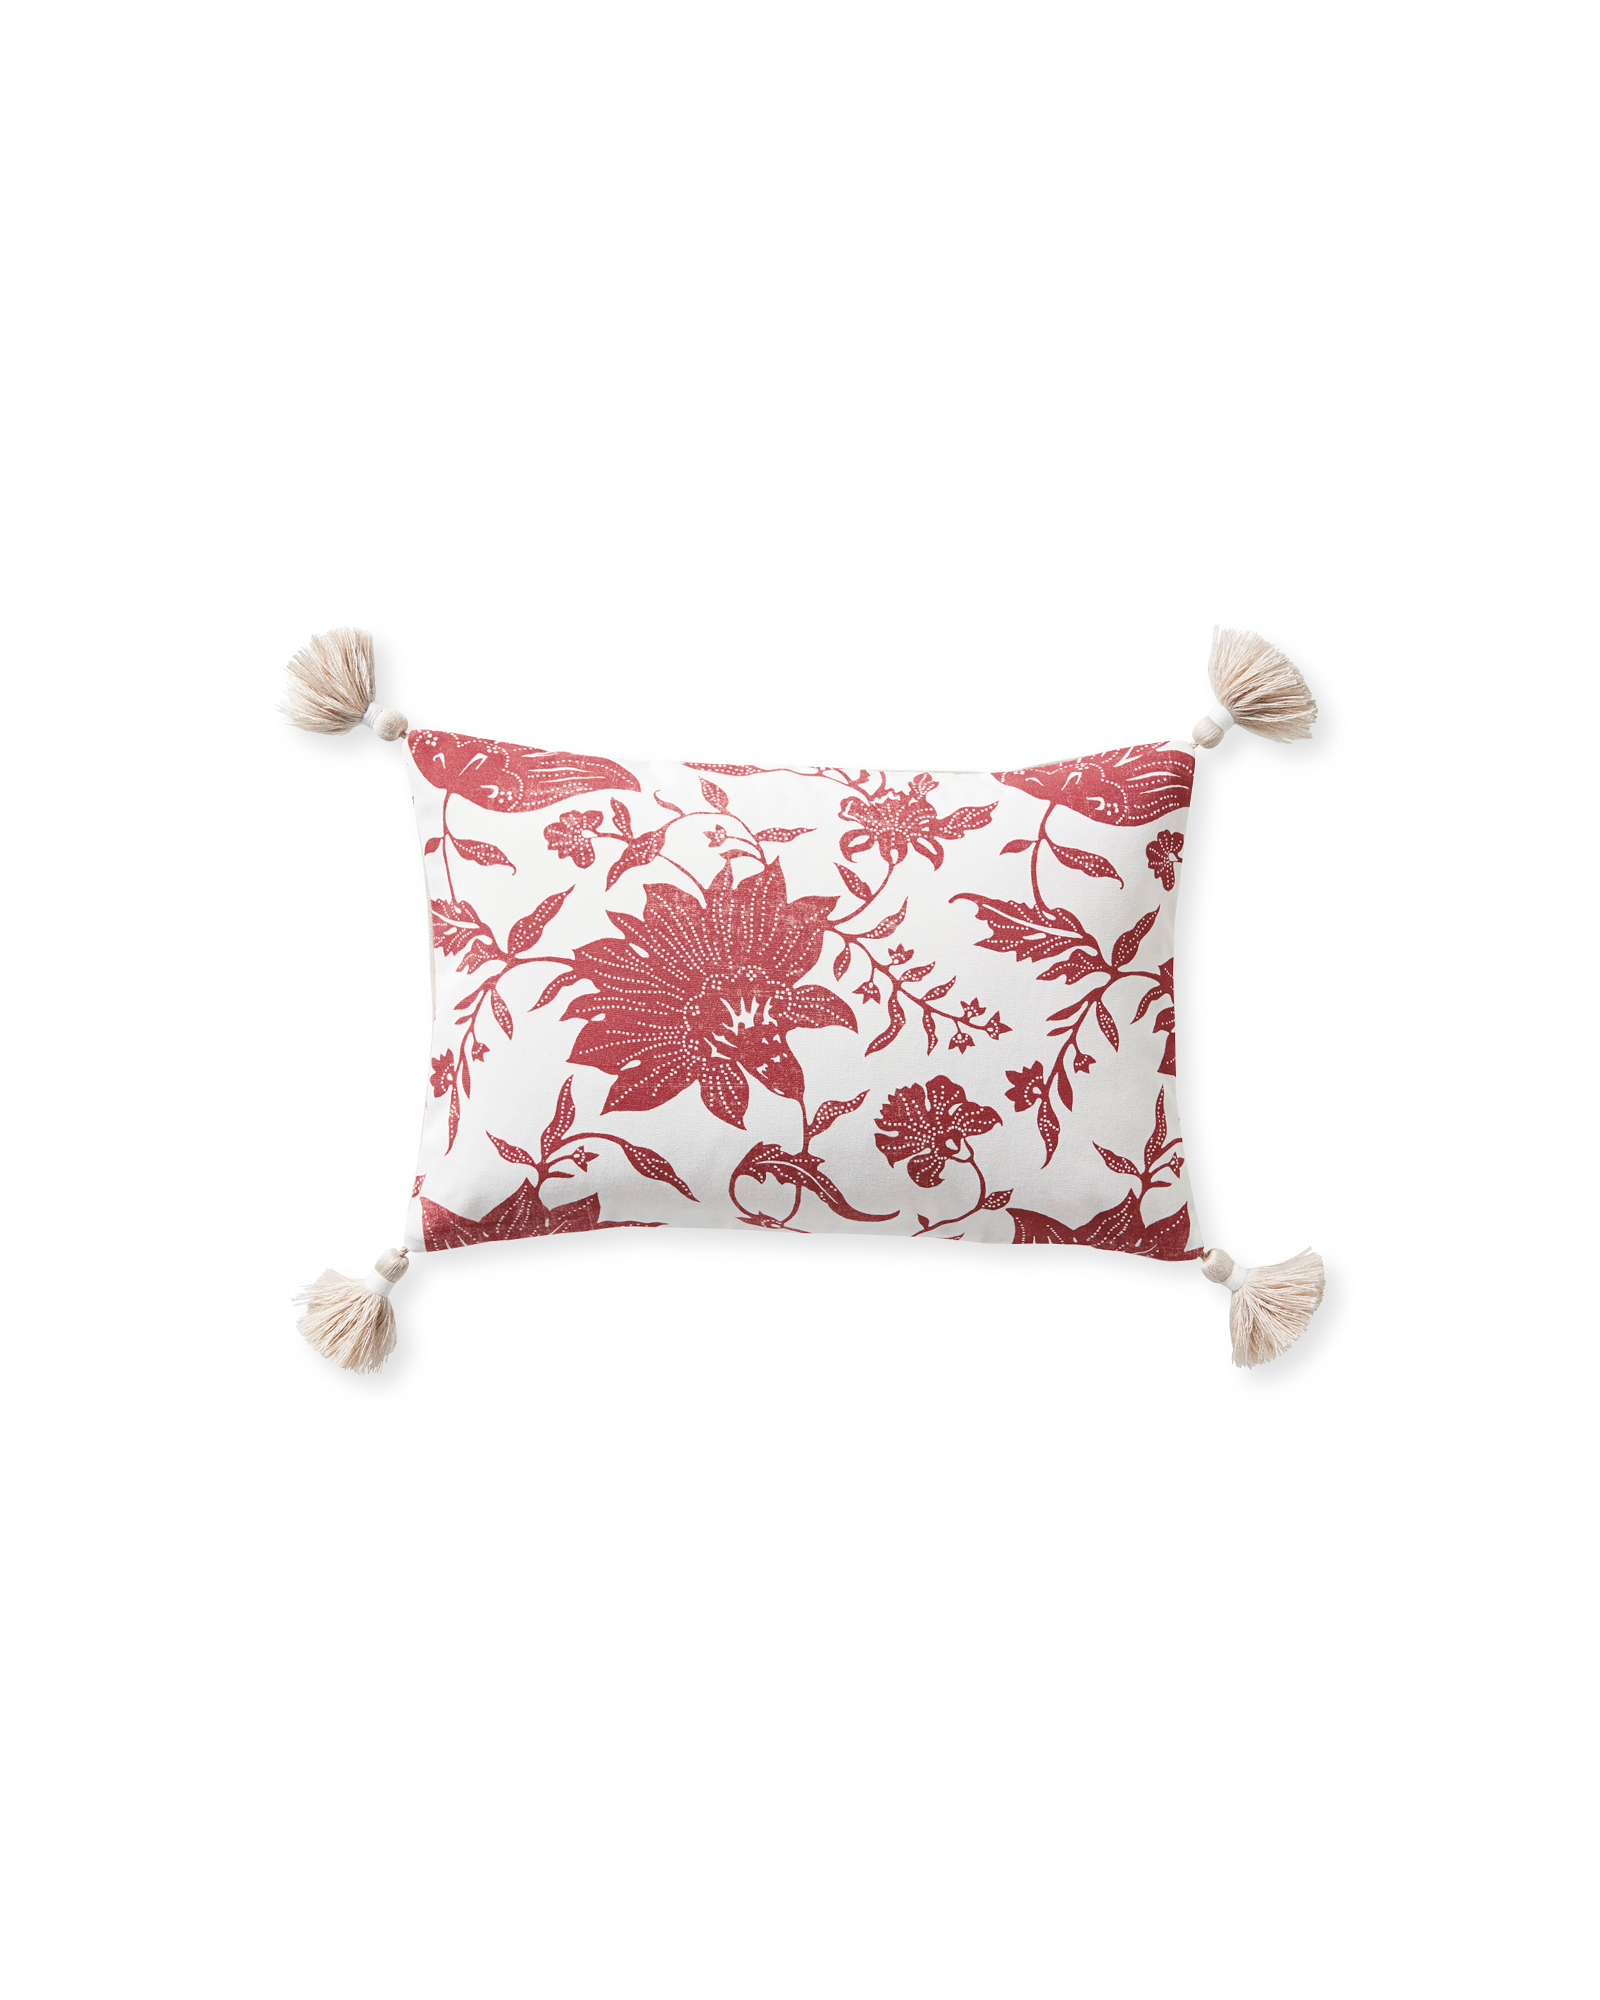 Deauville Pillow Cover, Poppy